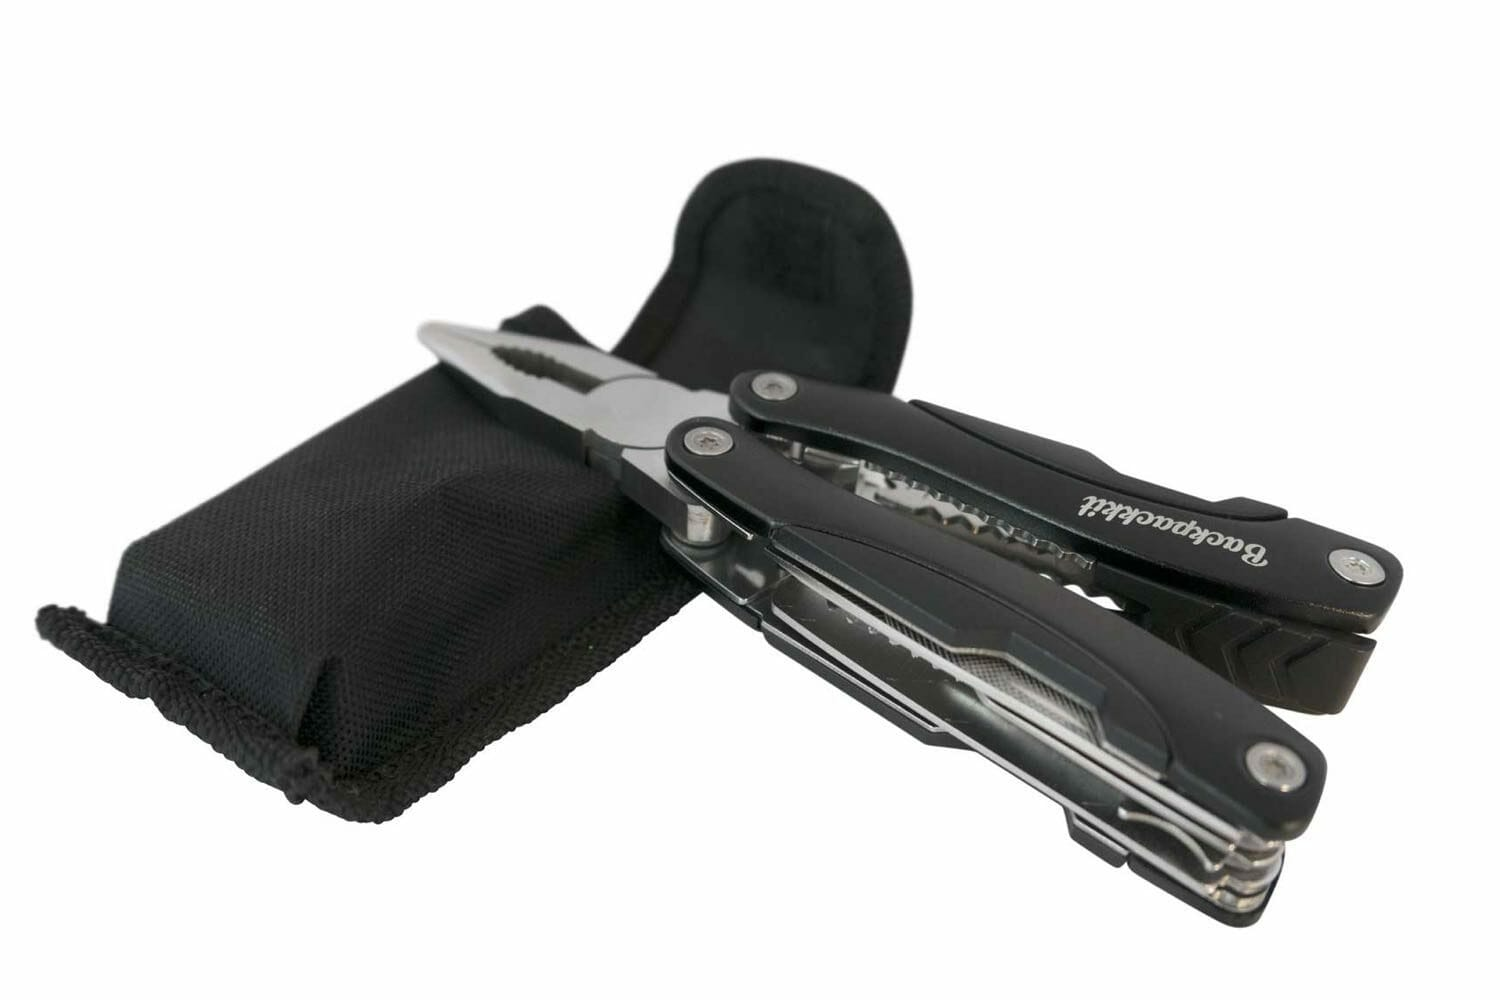 Backpackkit multitool zoom overview